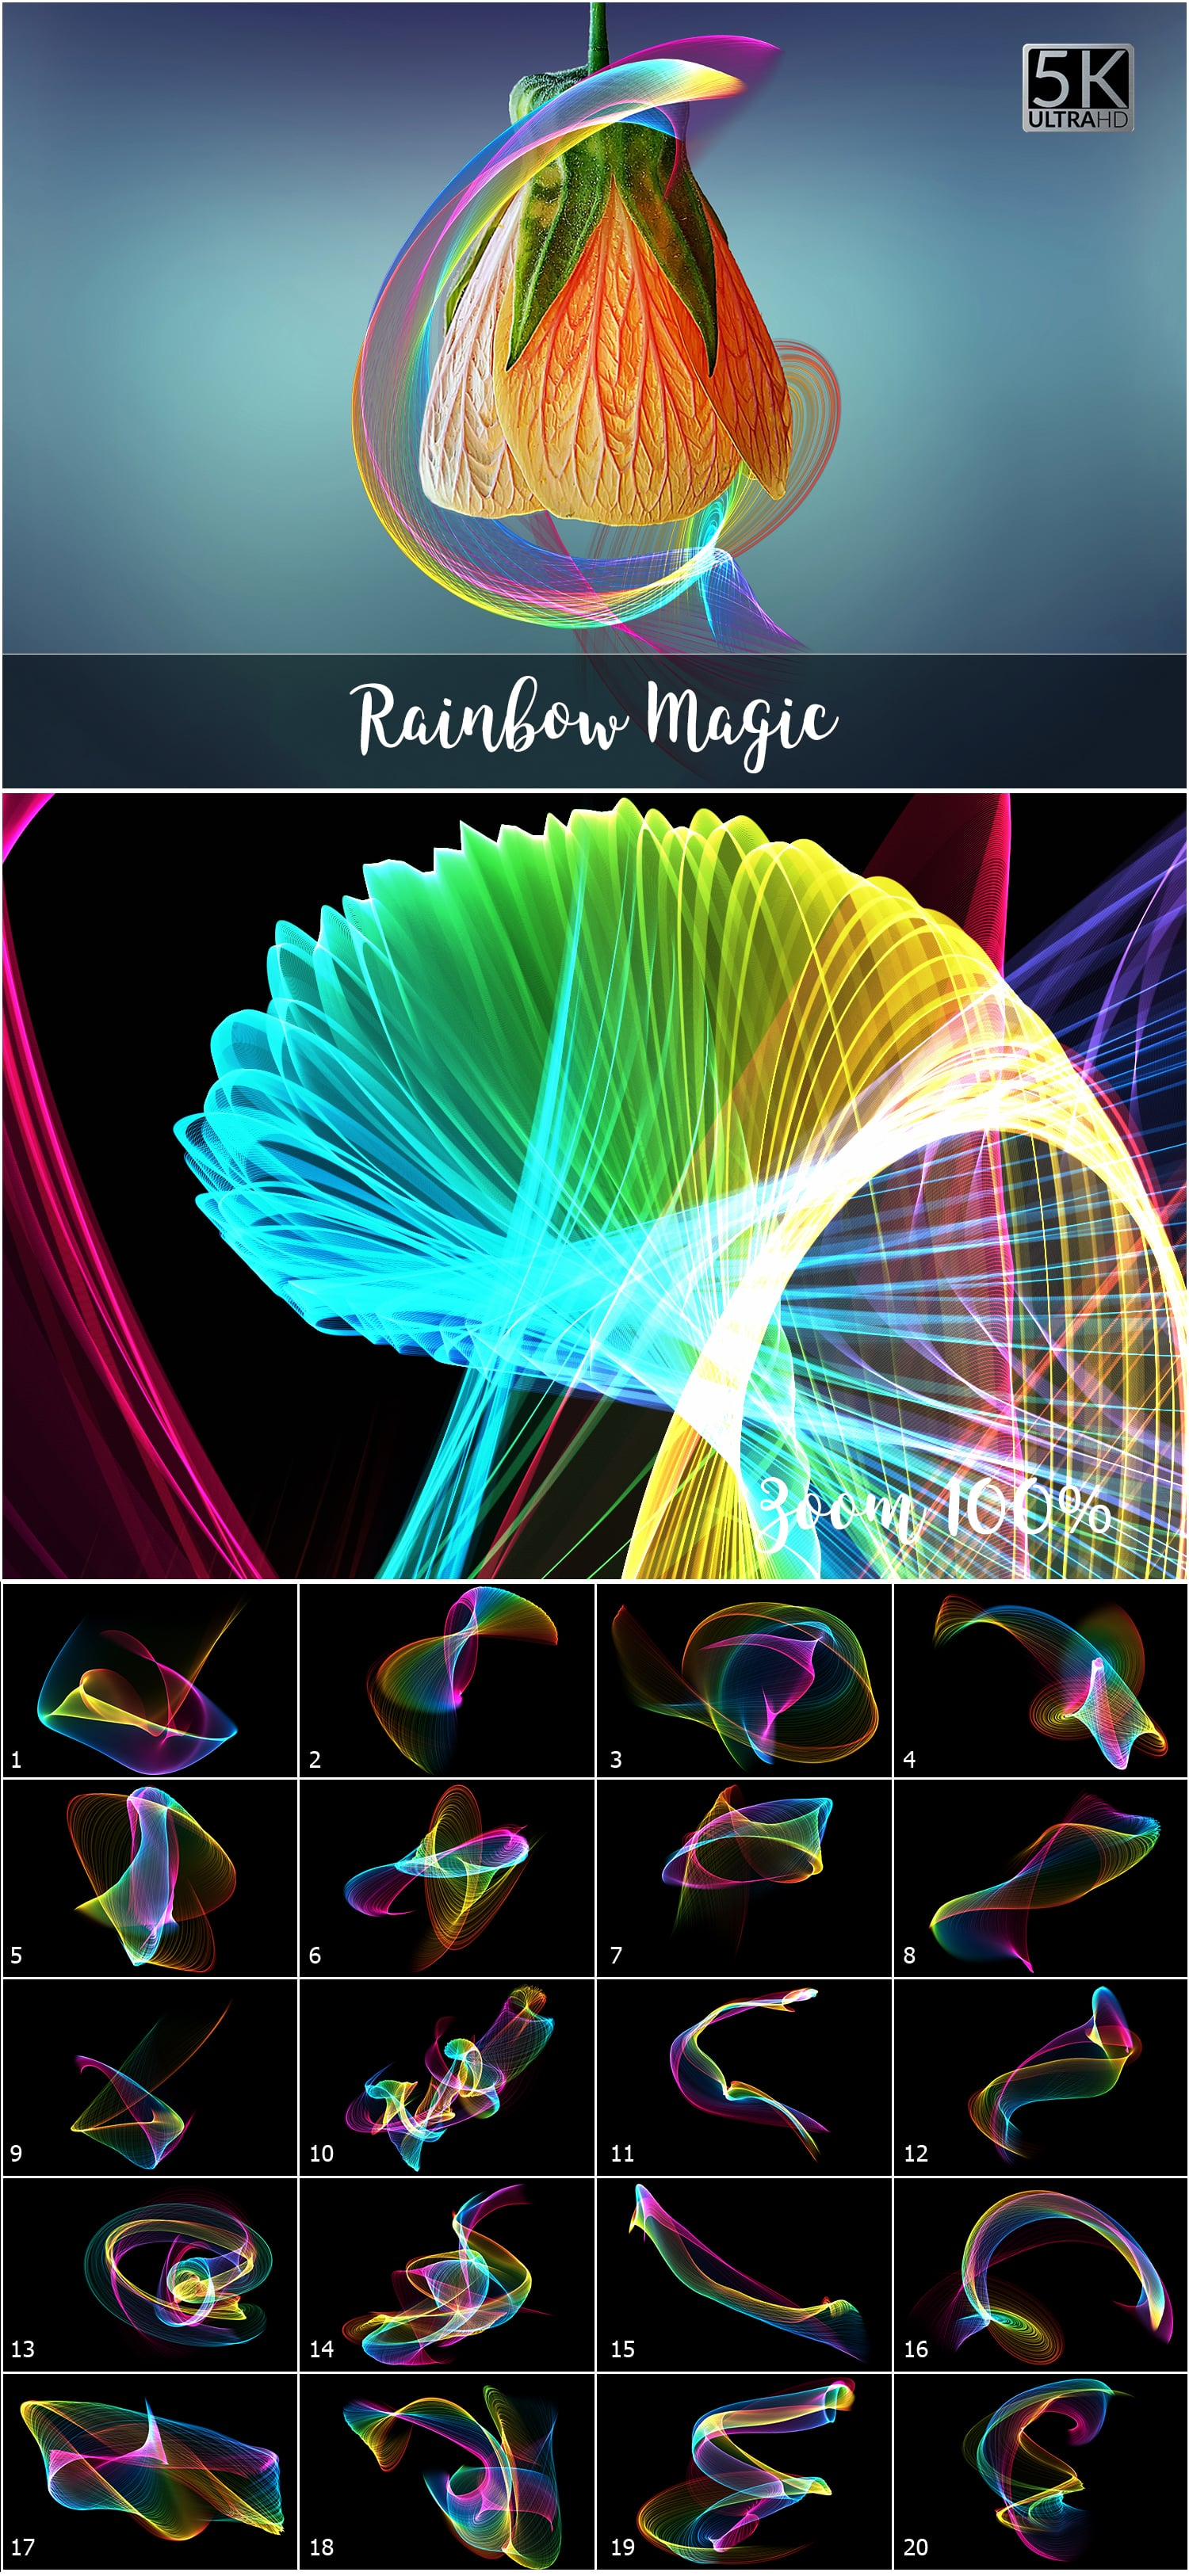 1053 Spectacular Overlays png - Only $18! - Rainbow Magic